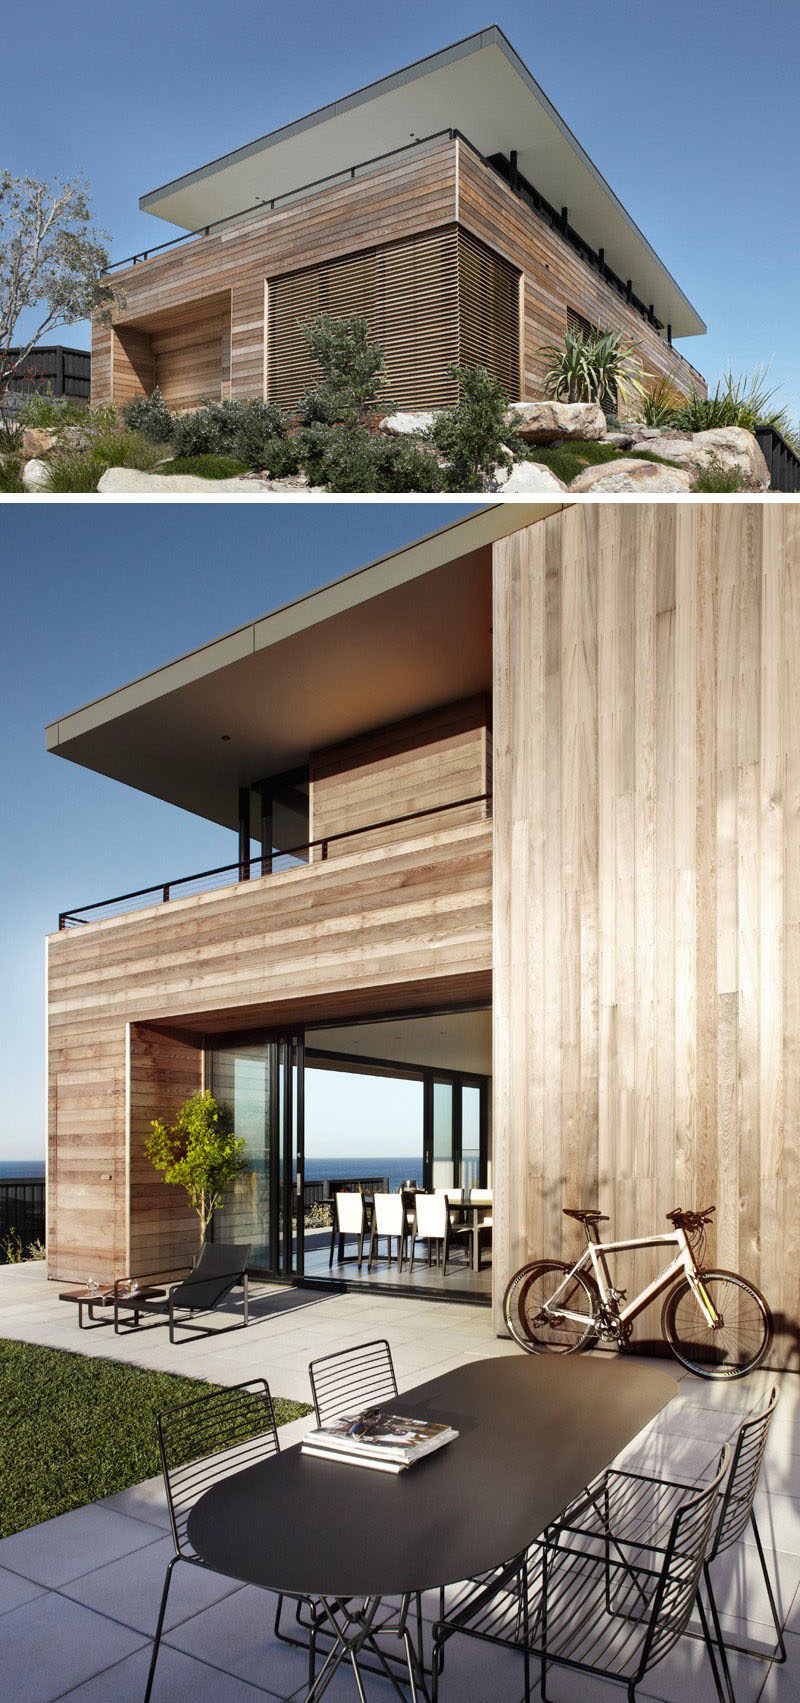 14 Examples Of Modern Beach Houses From Around The World  CONTEMPORIST